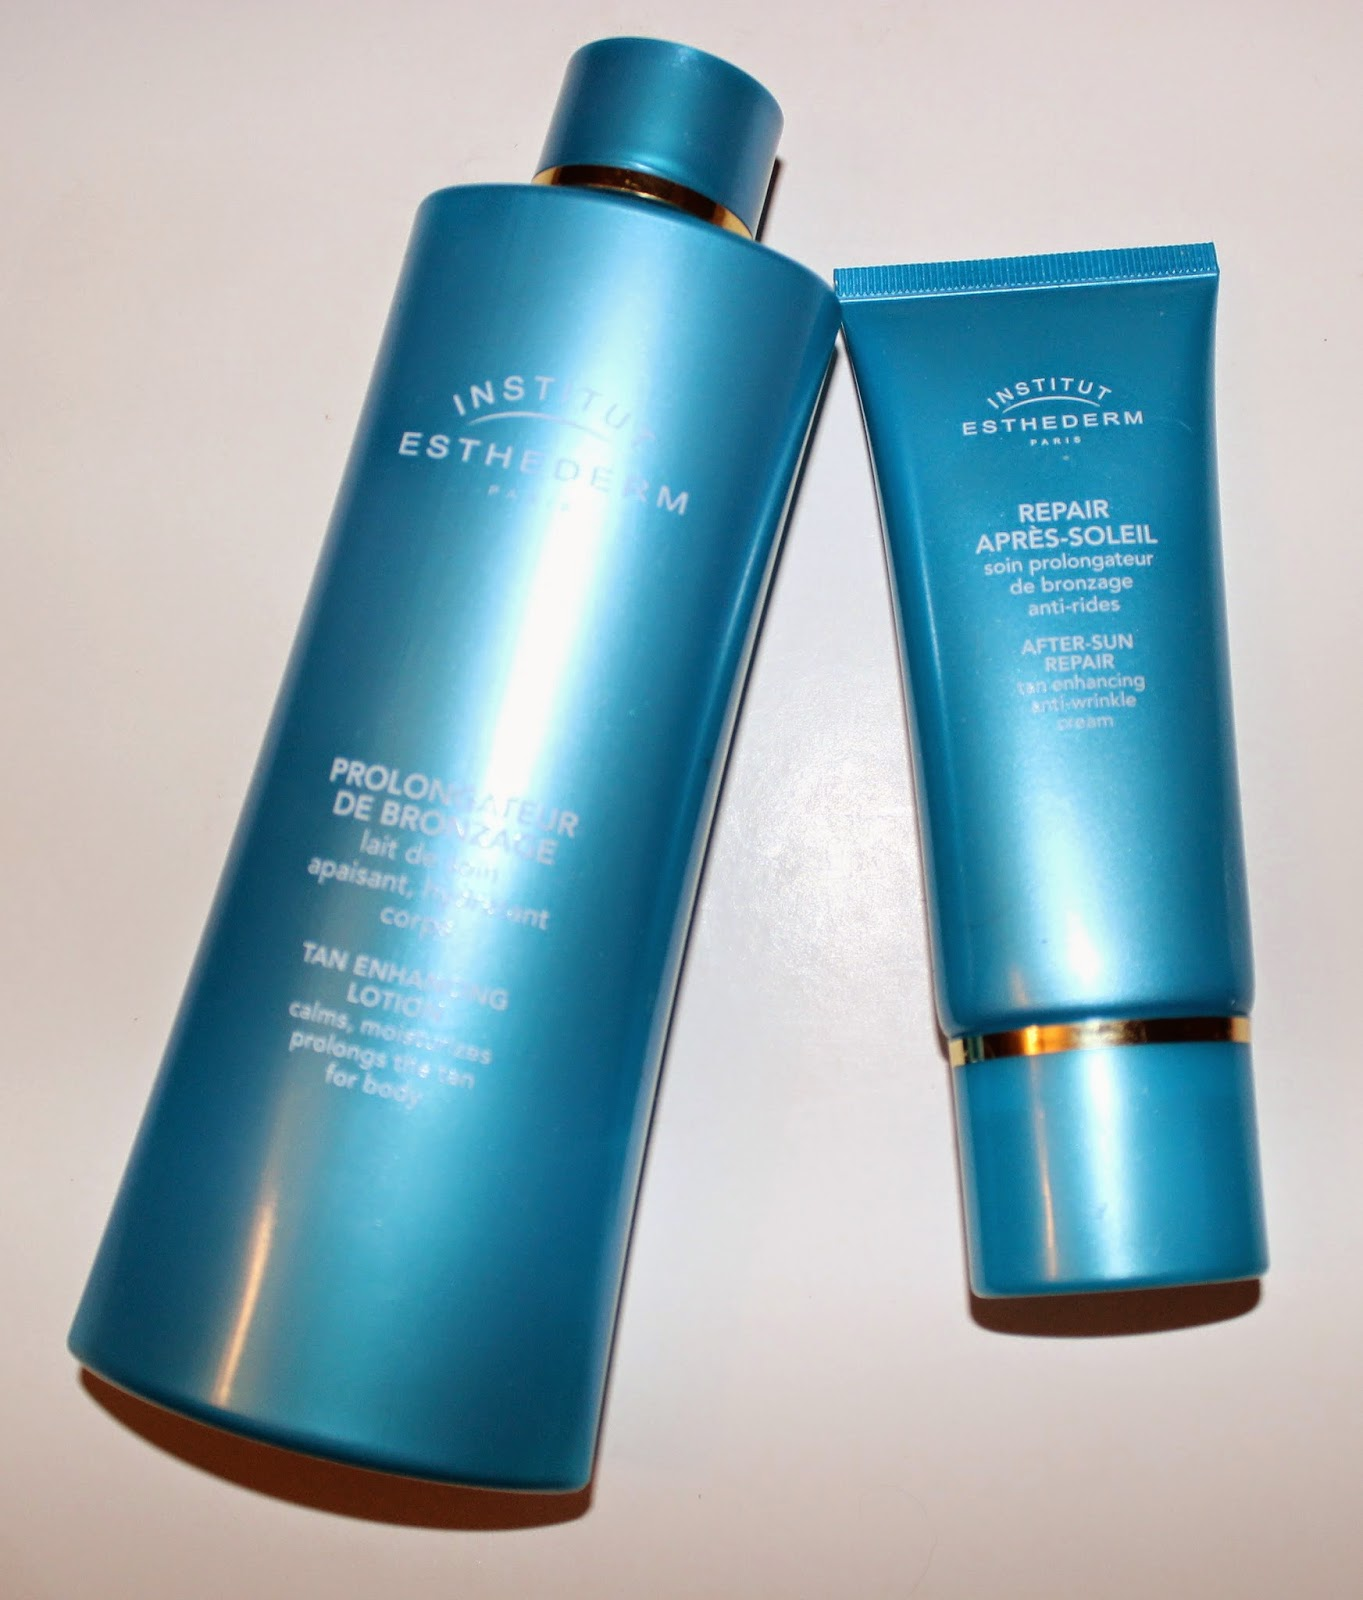 Institut Esthederm Tan Enhancing Lotion & After-Sun Repair